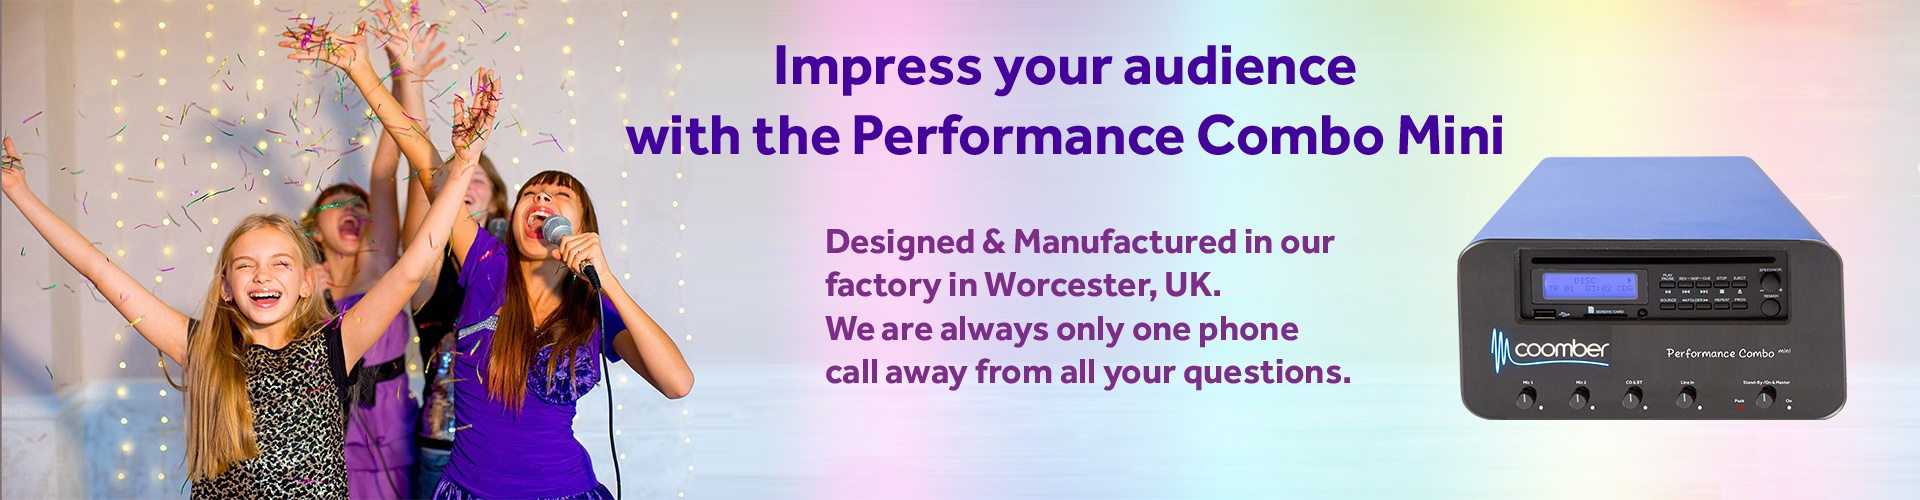 Leading British manufacturer of quality educational audio products and sound systems -